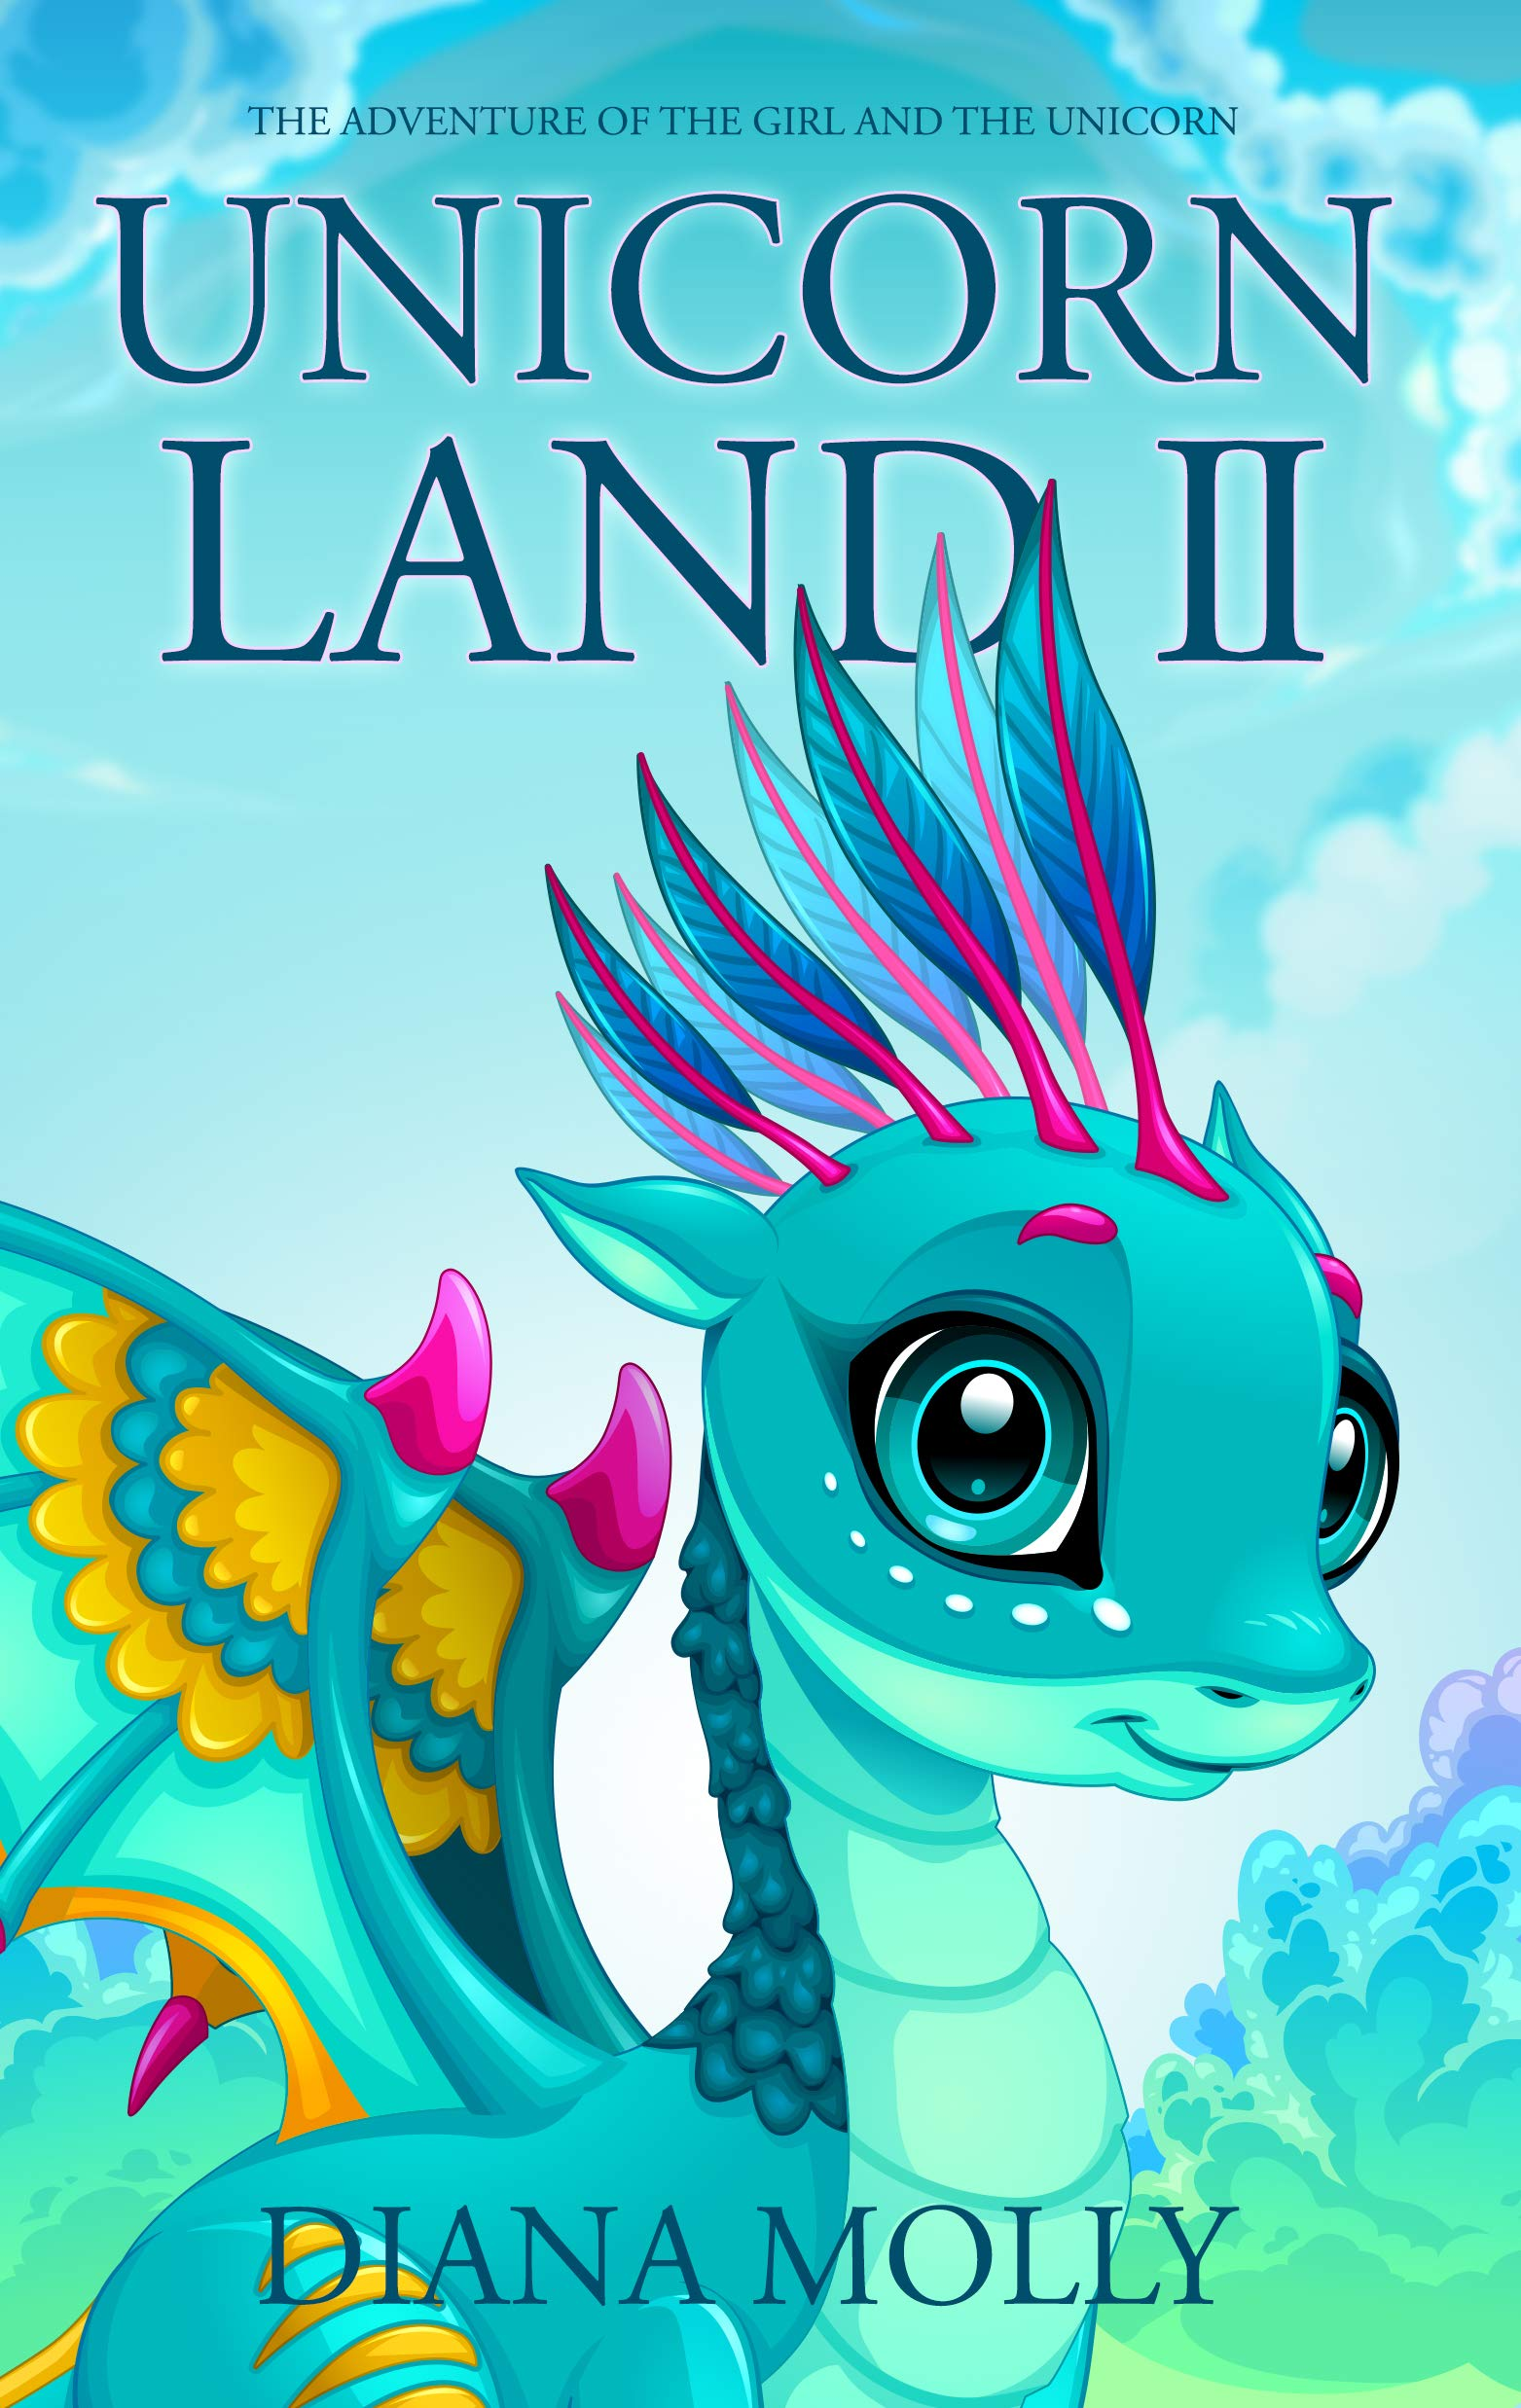 The Adventure of the Girl and the Unicorn : Unicorn land 2: The New Adventure (Magical Adventure, Friendship, Grow up, Fantasy books for girls ages 8-12)